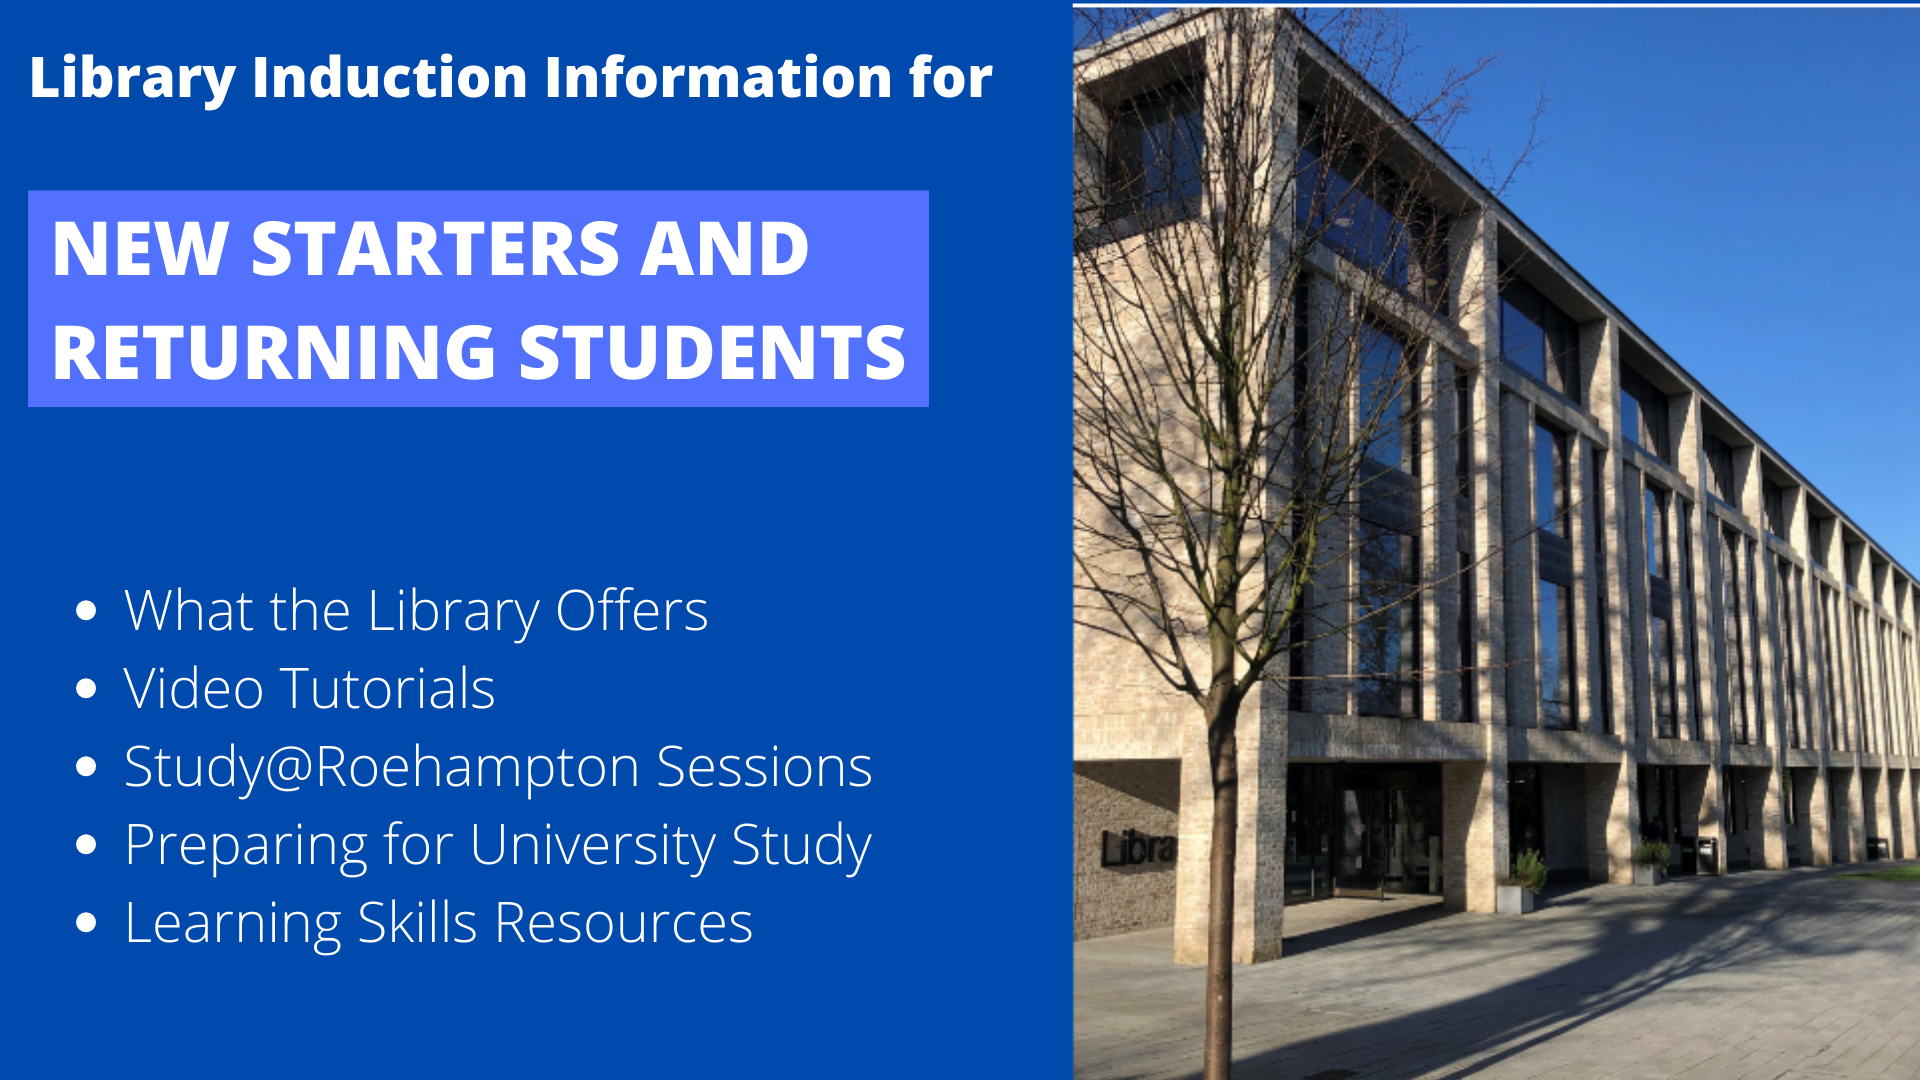 New Starters guide to using the library. All the information you need to know!